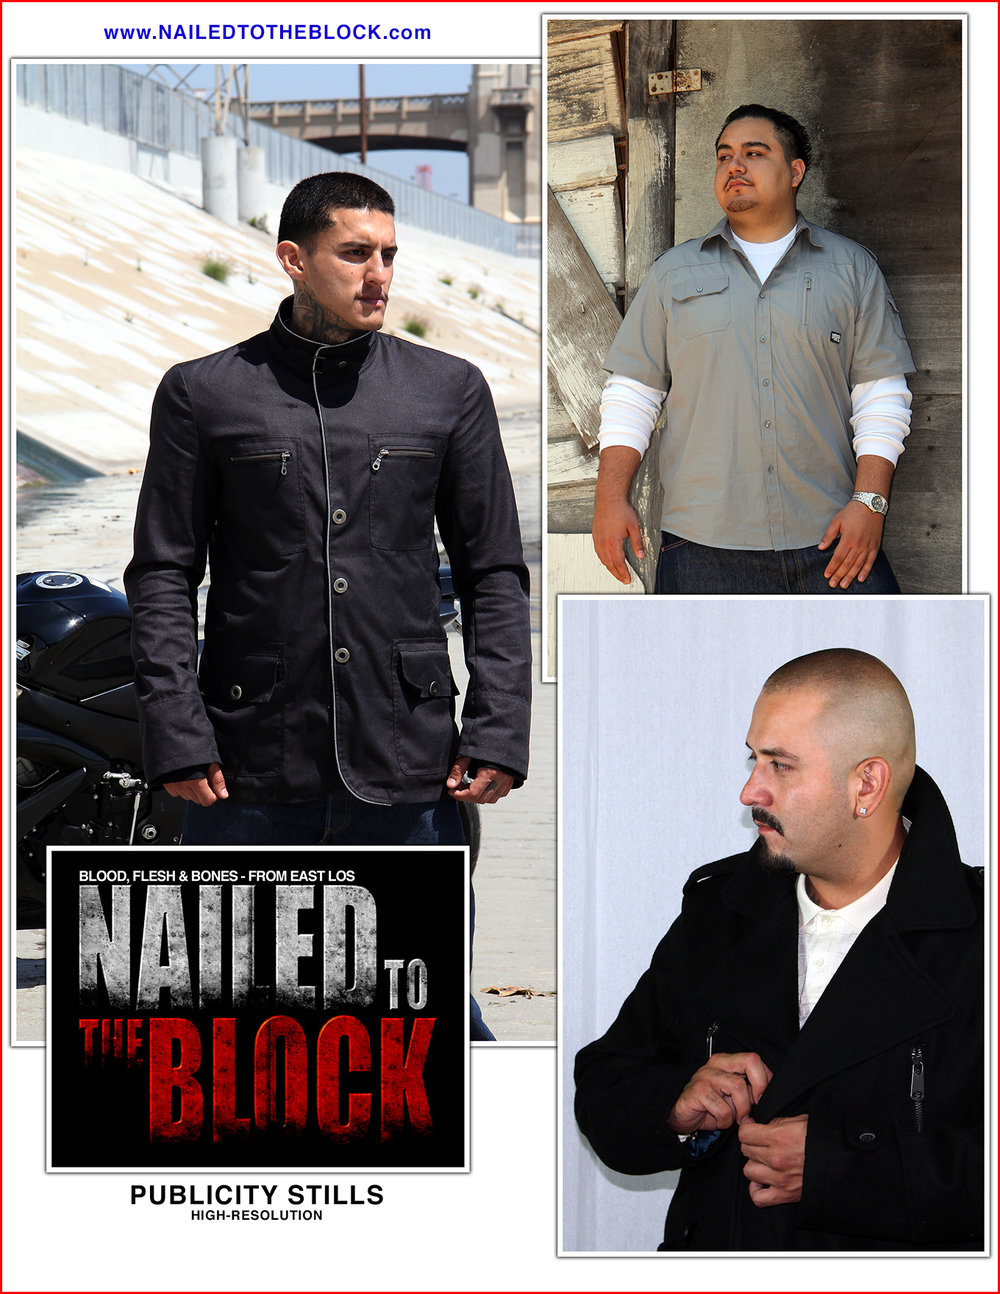 Nailed To The Block Publicity Stills